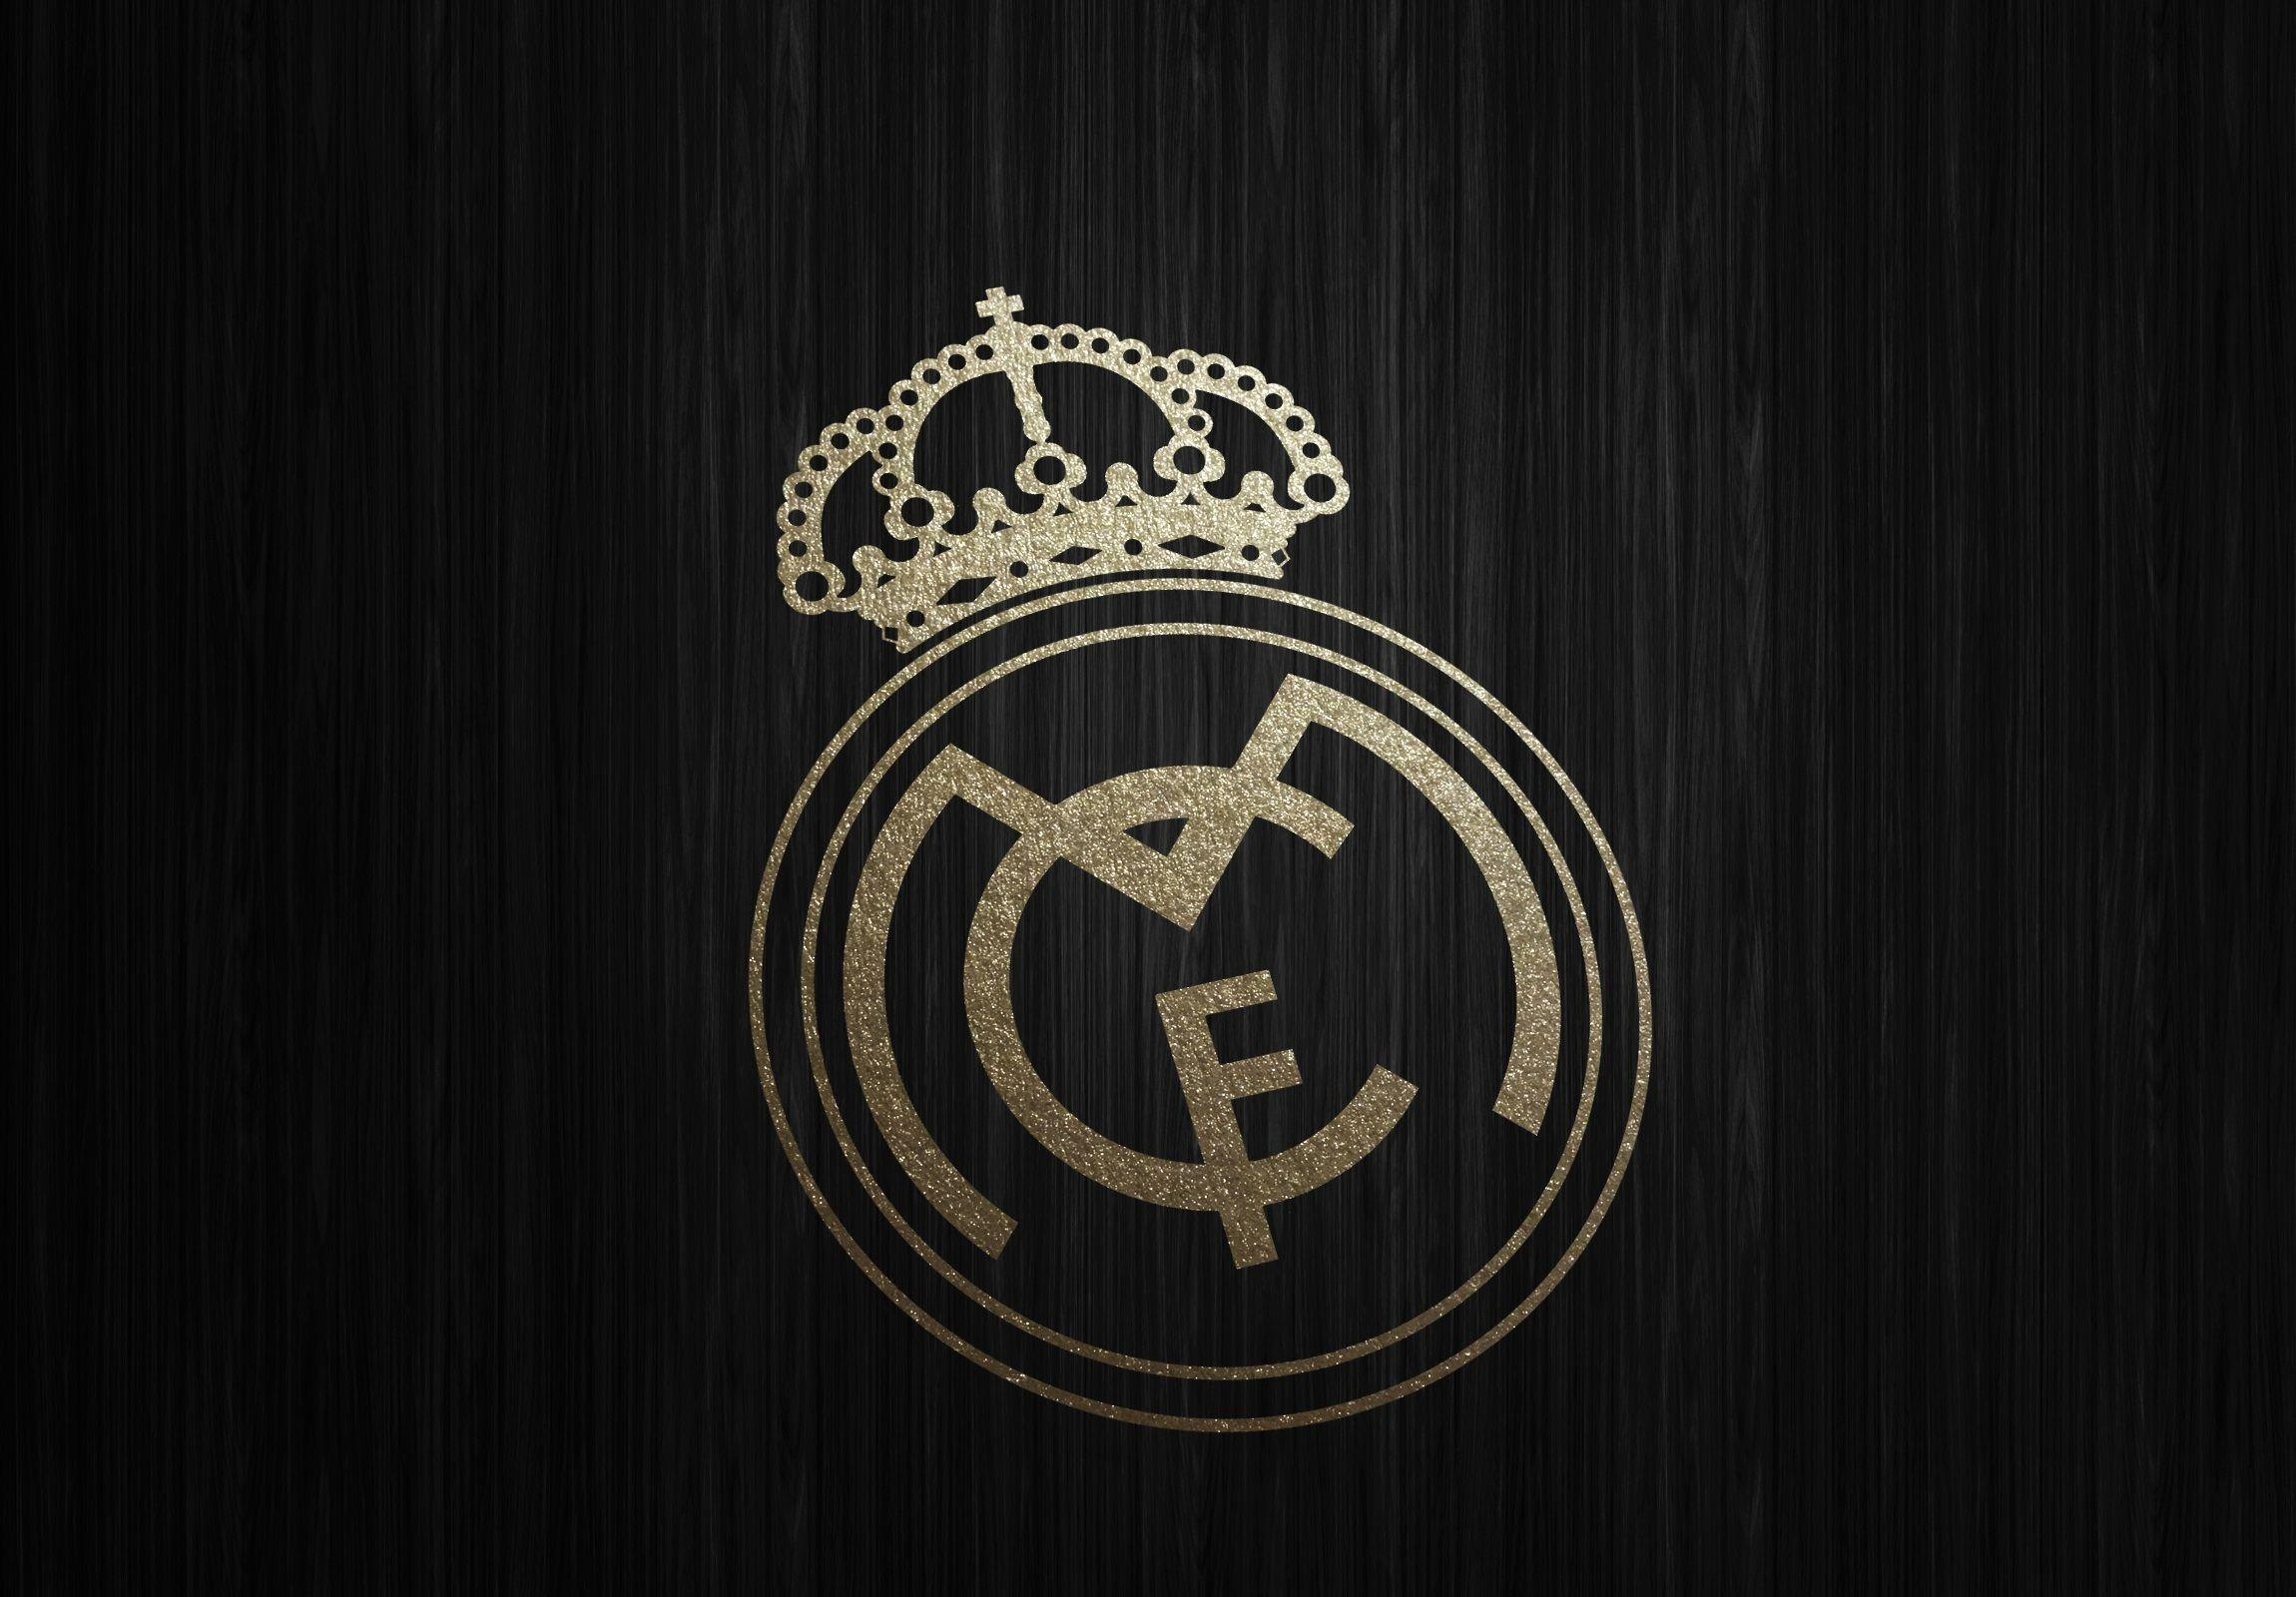 Real Madrid Logo Wallpaper HD 2016 | HD Wallpapers, Backgrounds ...